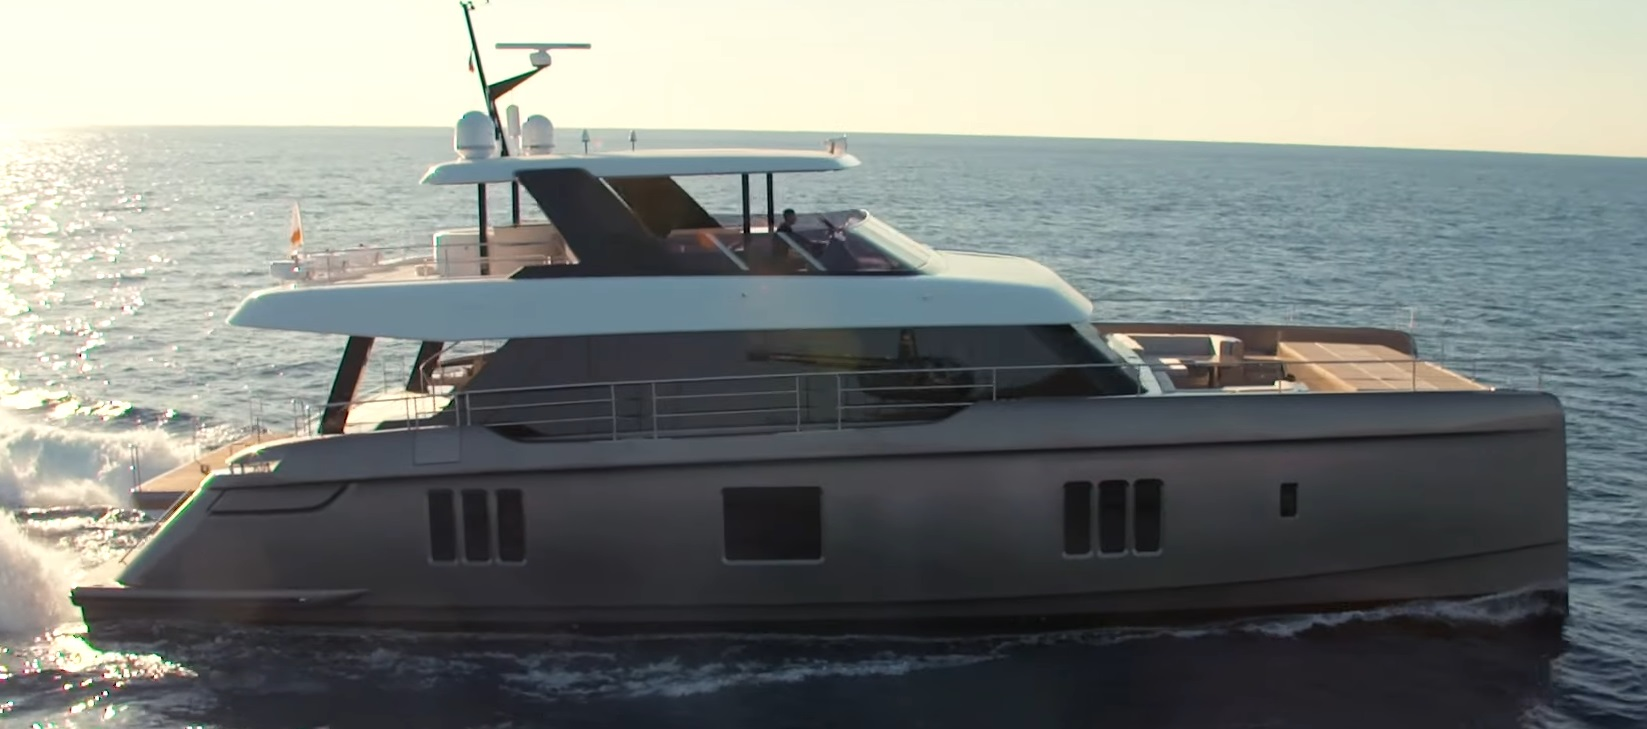 Rafael Nadal S New Custom Yacht Cost A Reported 10 Million Celebrity Net Worth